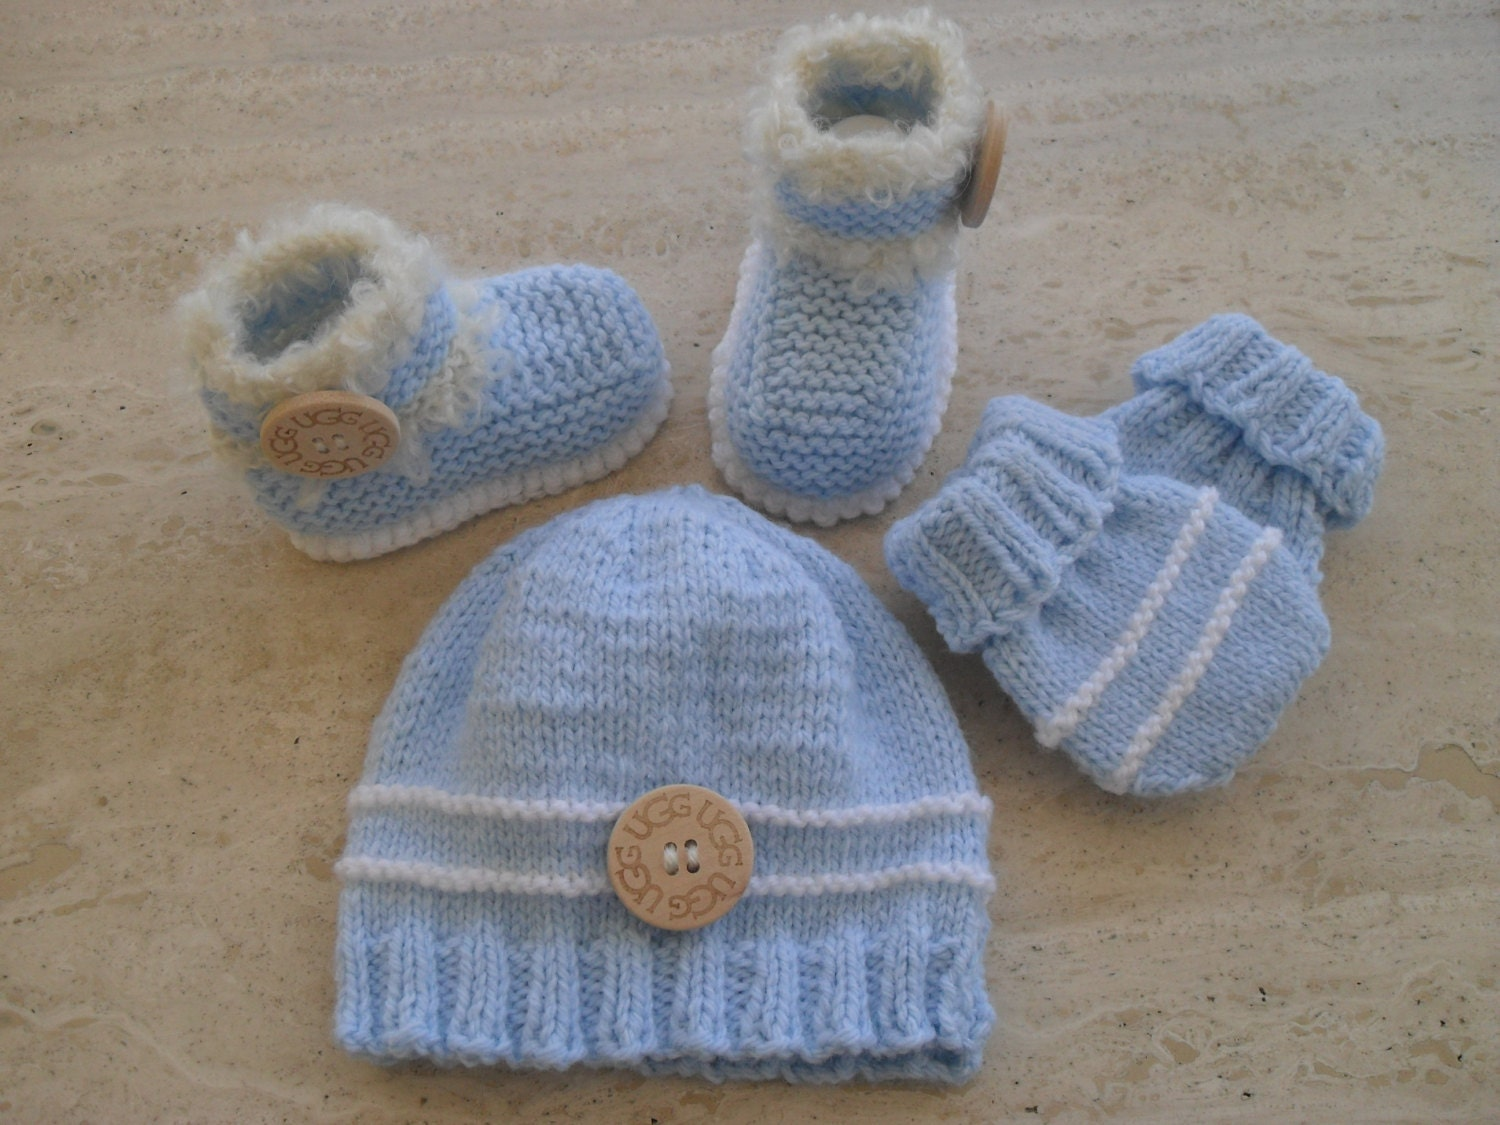 Knitting Designs For Baby Boy : Instant download knitting pattern baby boys booties hat